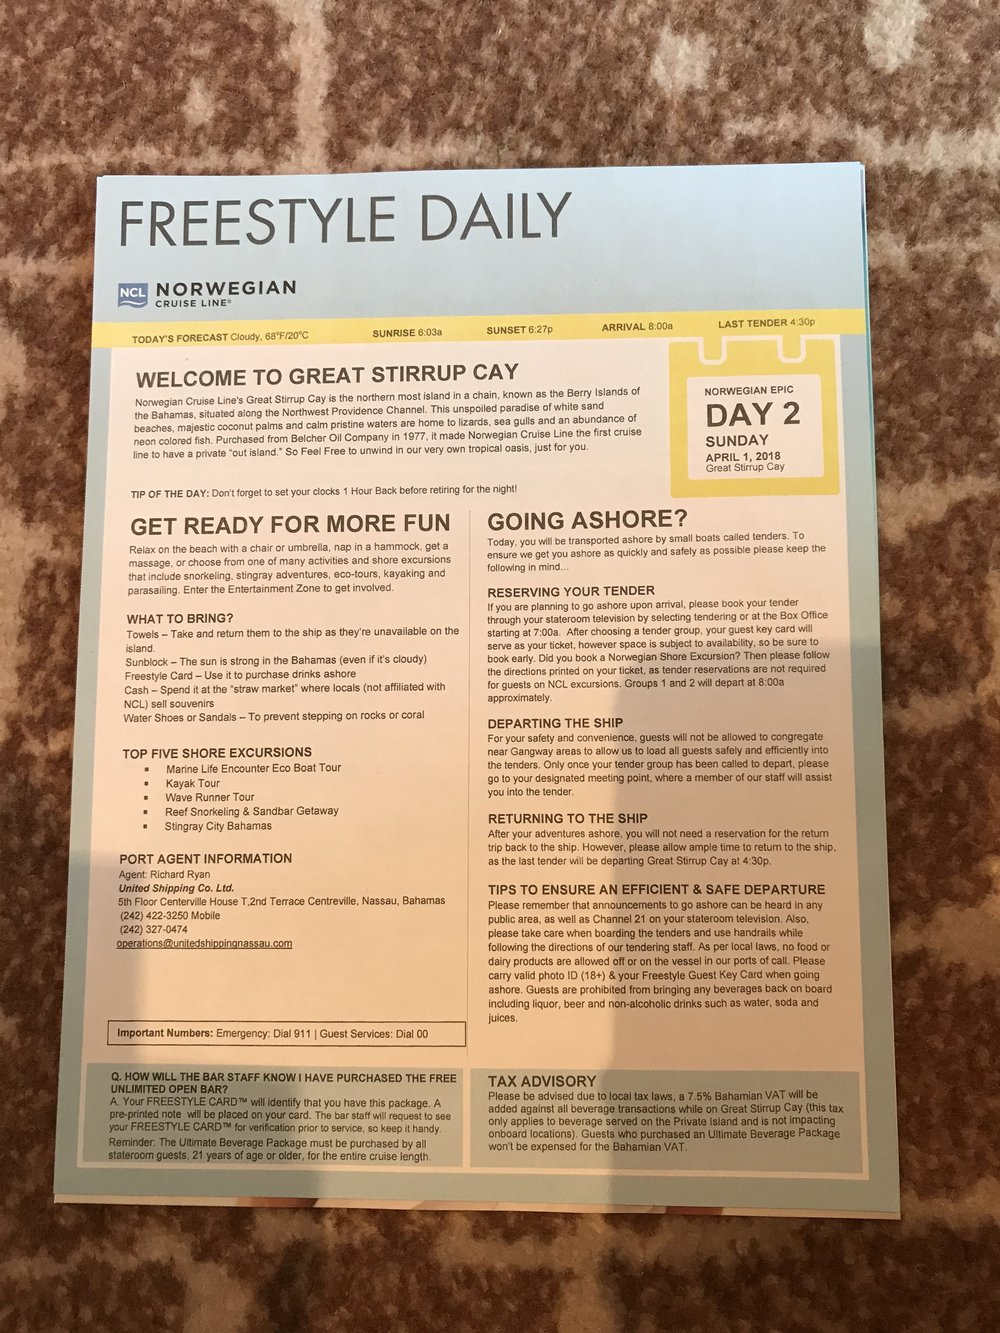 Freestyle Daily for Day 2